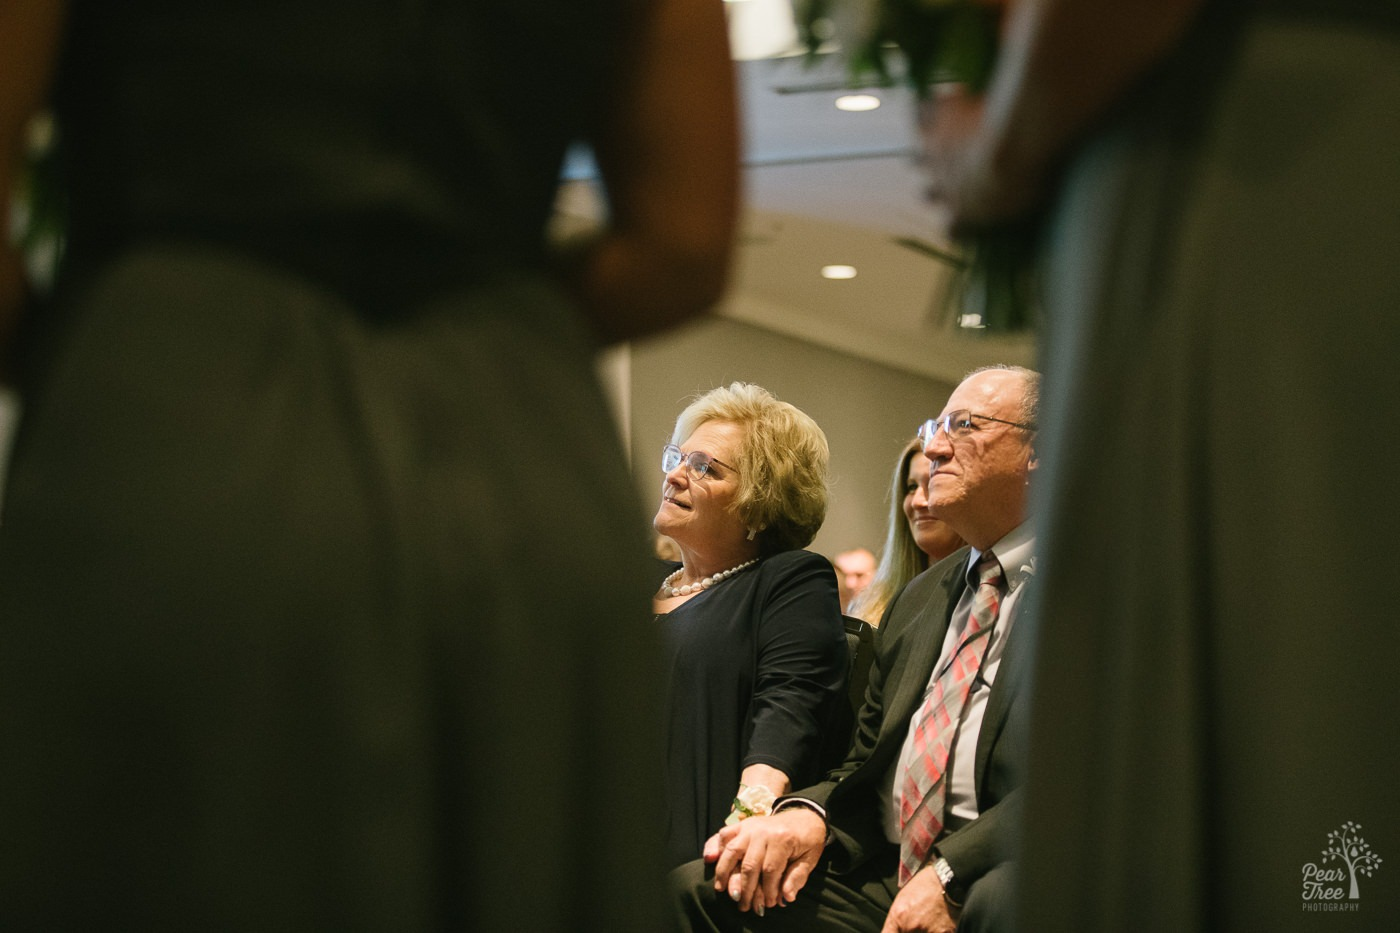 Groom's parents holding hands and smiling as they watch their son get married inside Renaissance Concourse Atlanta Airport Hotel.